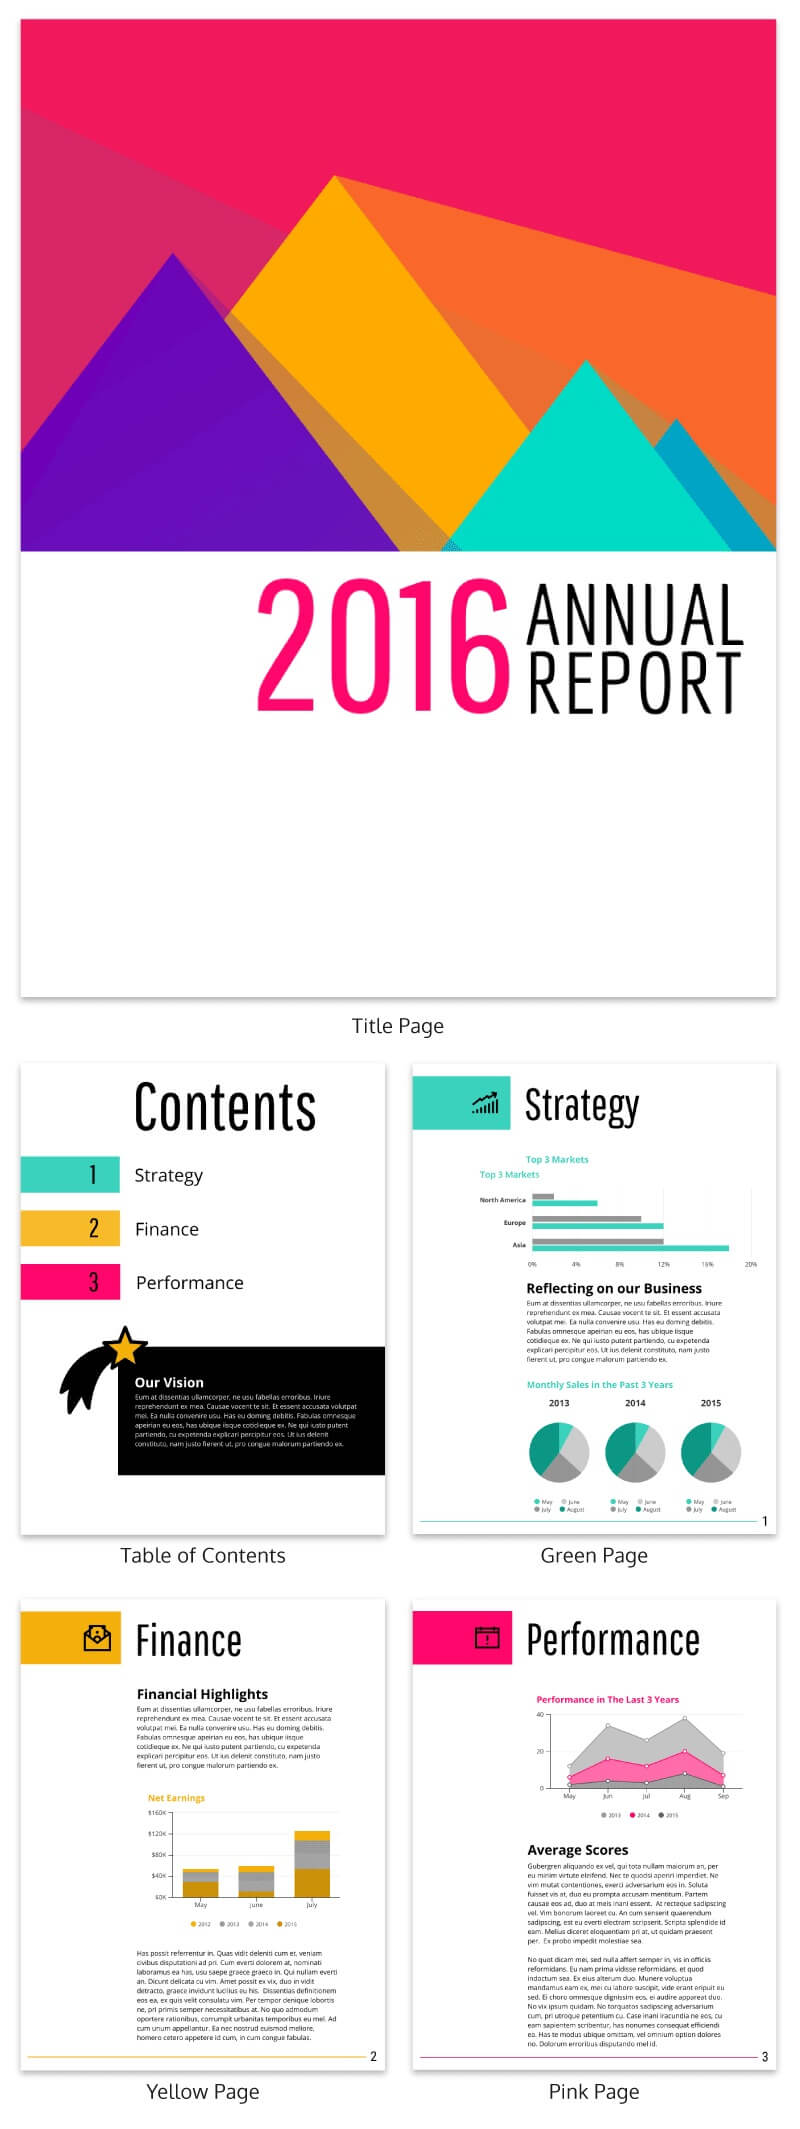 55+ Customizable Annual Report Design Templates, Examples & Tips for Word Annual Report Template